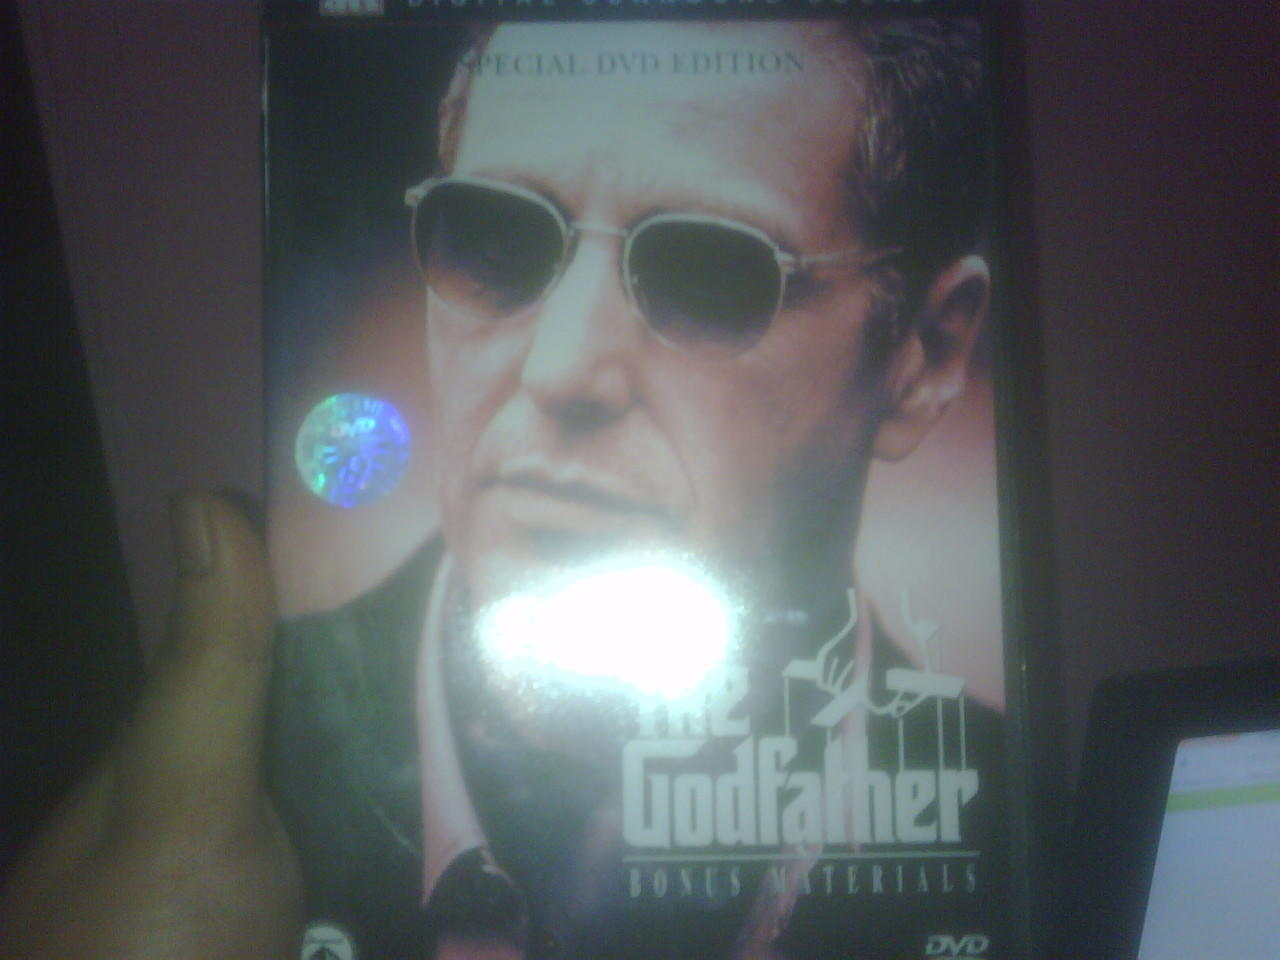 The GodFather colector edition